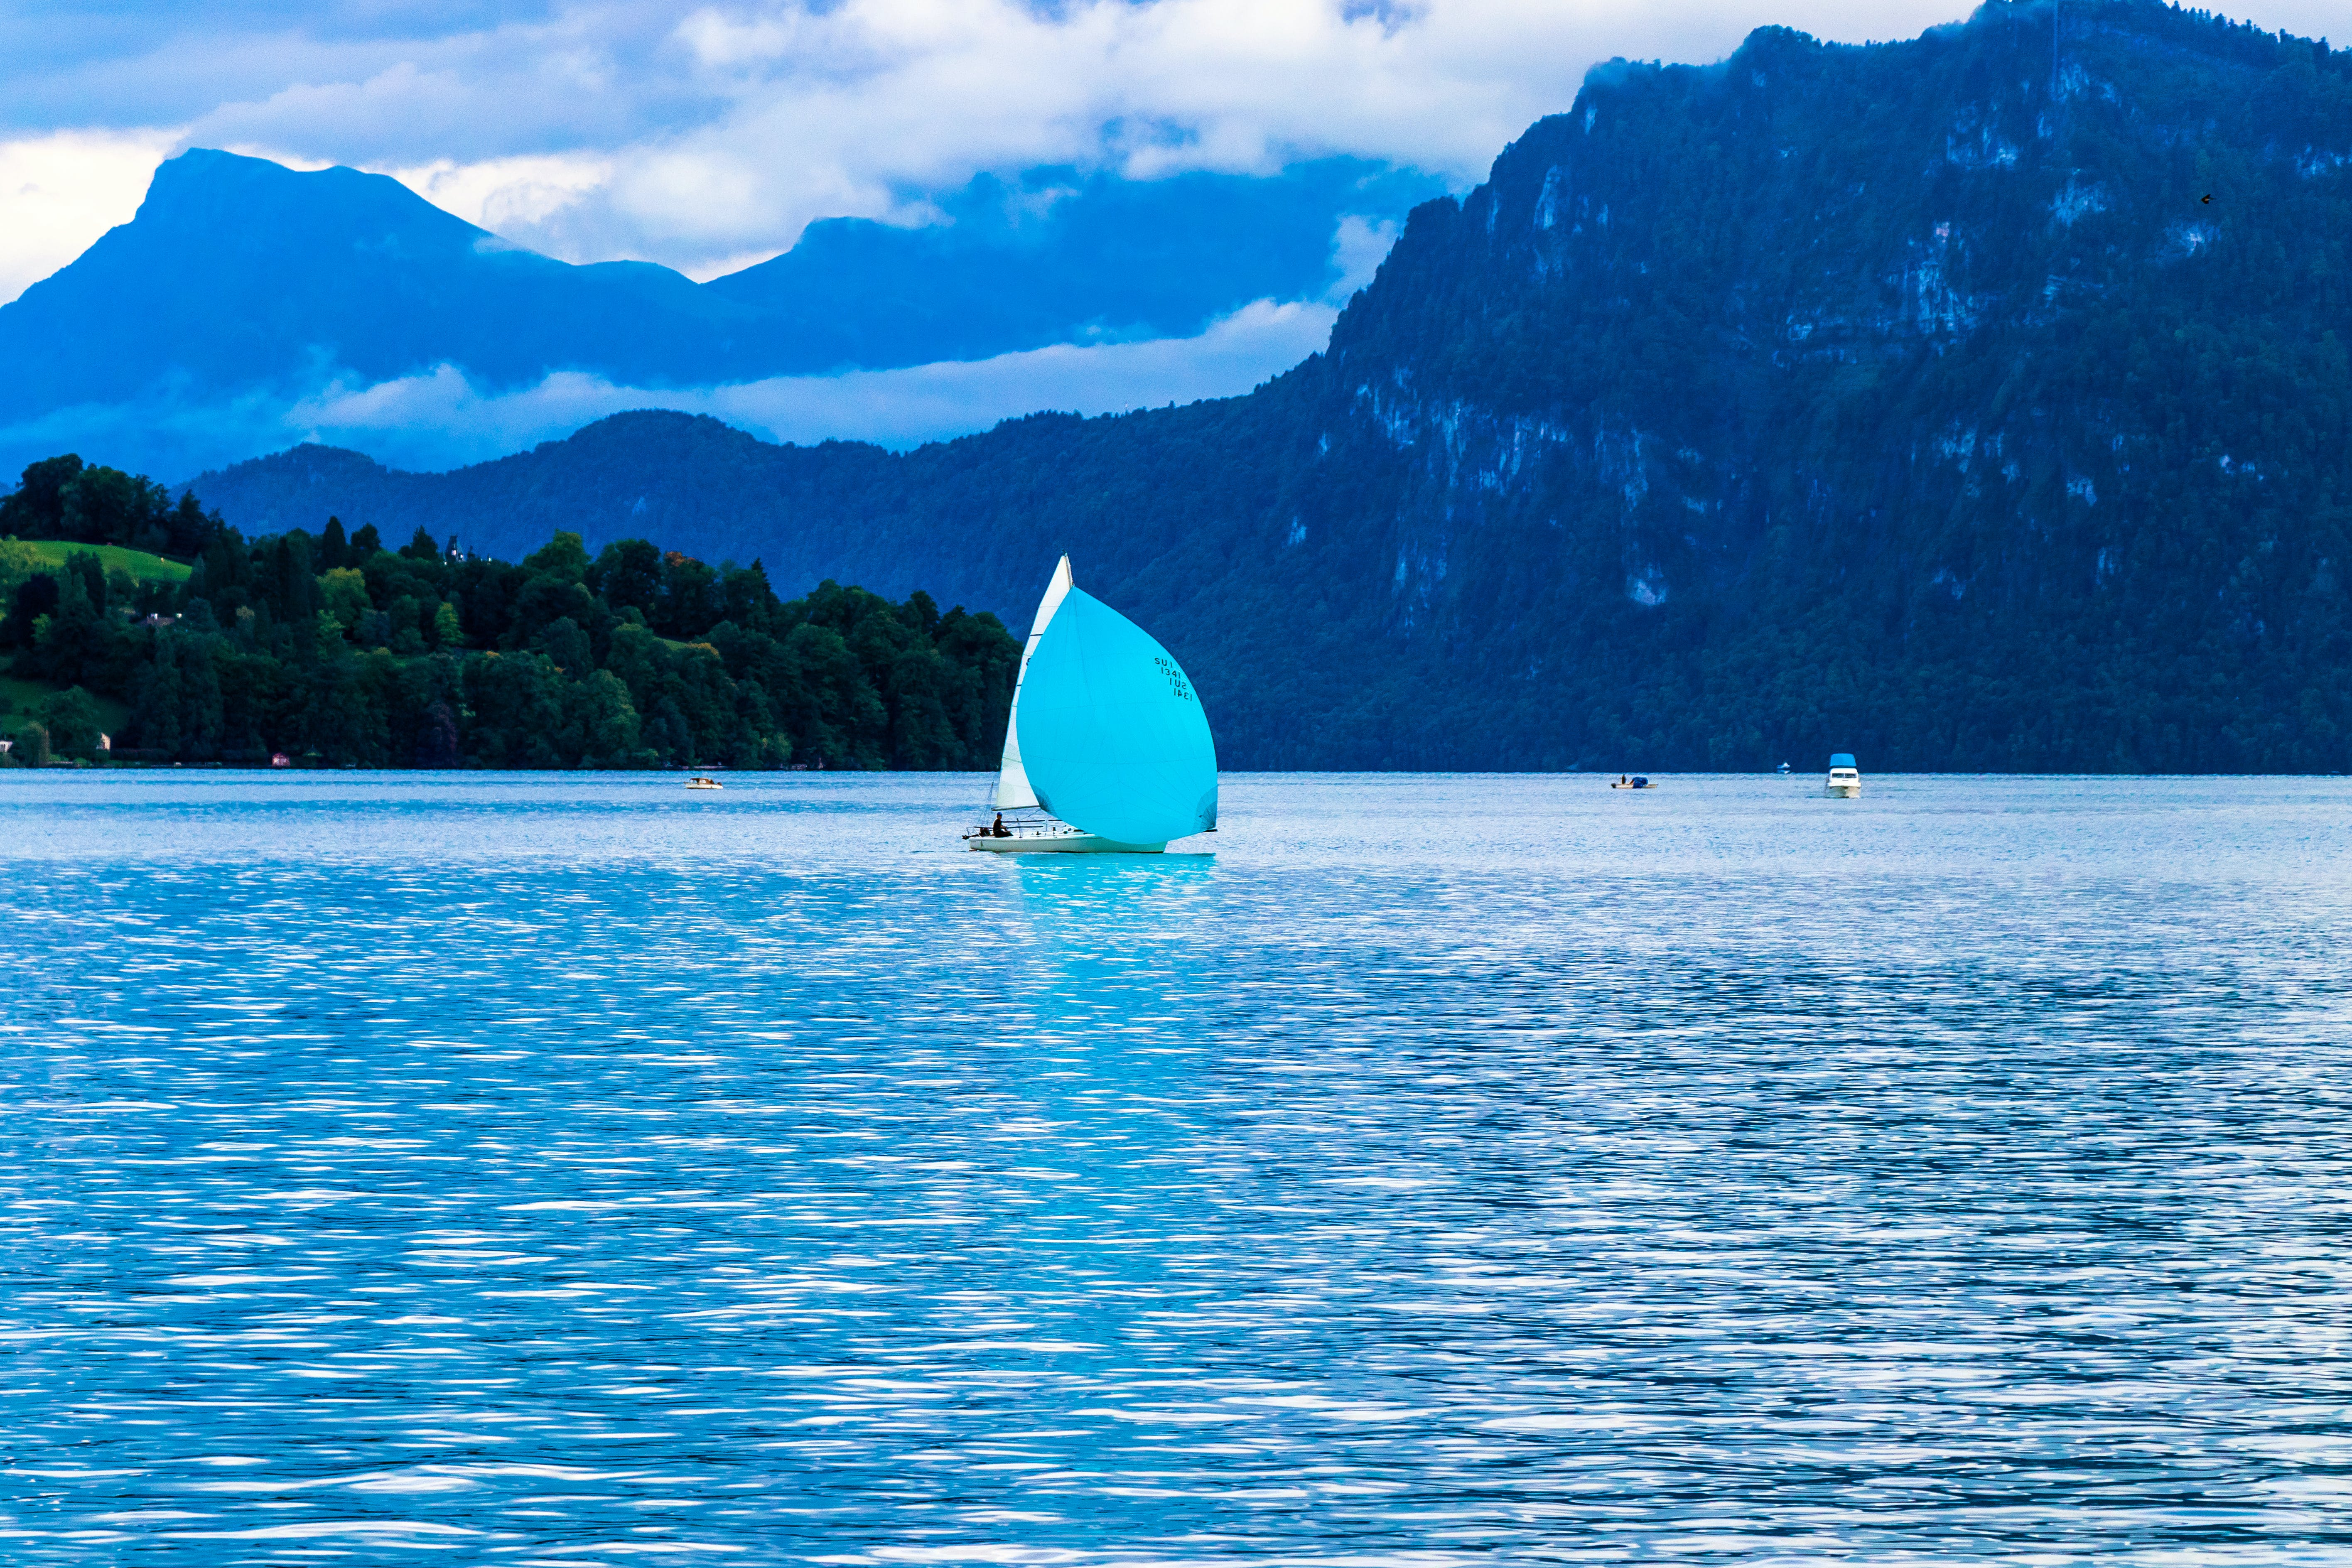 Sailing Boat on Body of Water